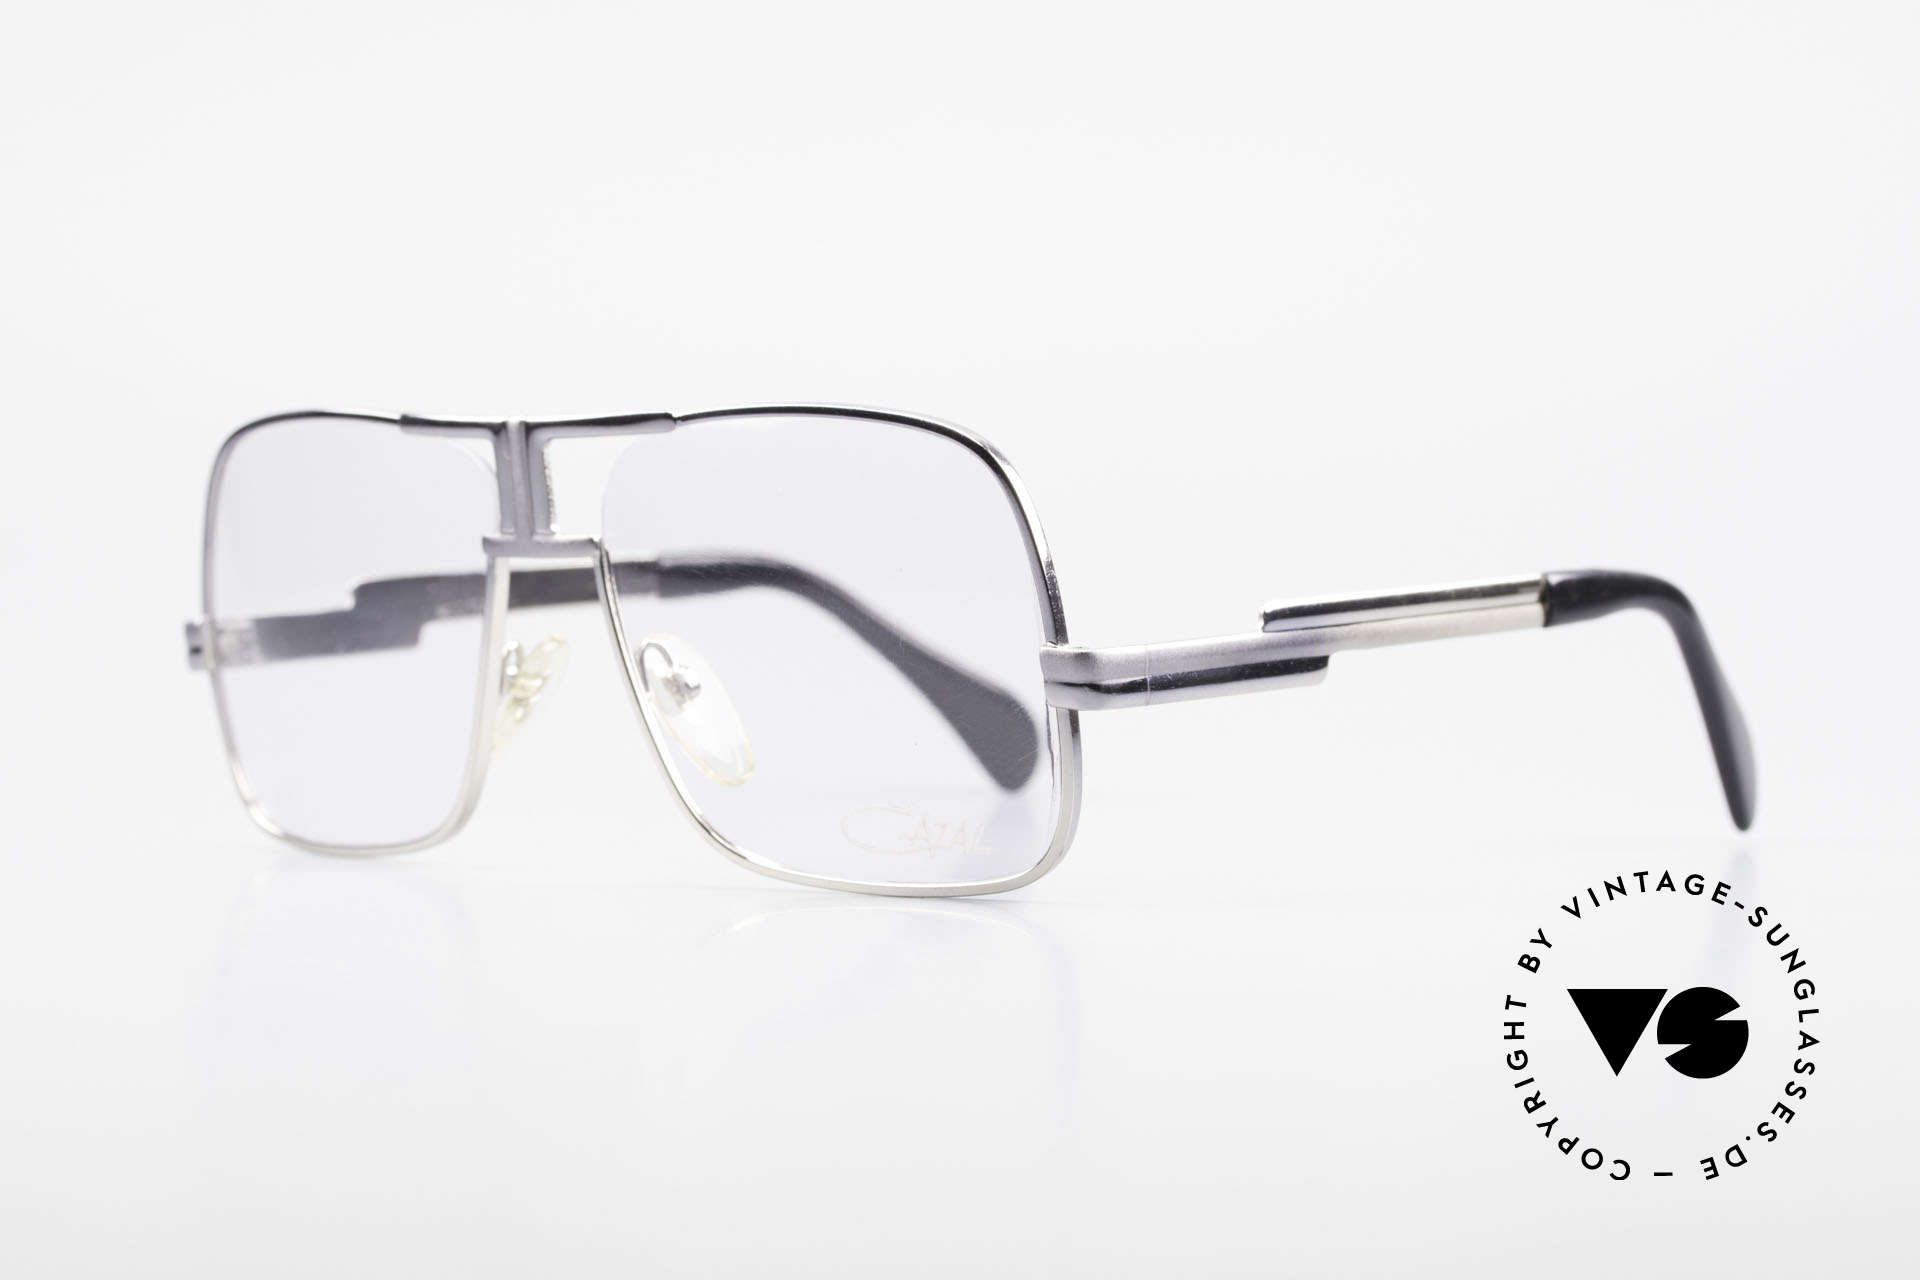 Cazal 701 Ultra Rare CAzal 70's Glasses, unusual and well balanced frame finish, size 56/18, Made for Men